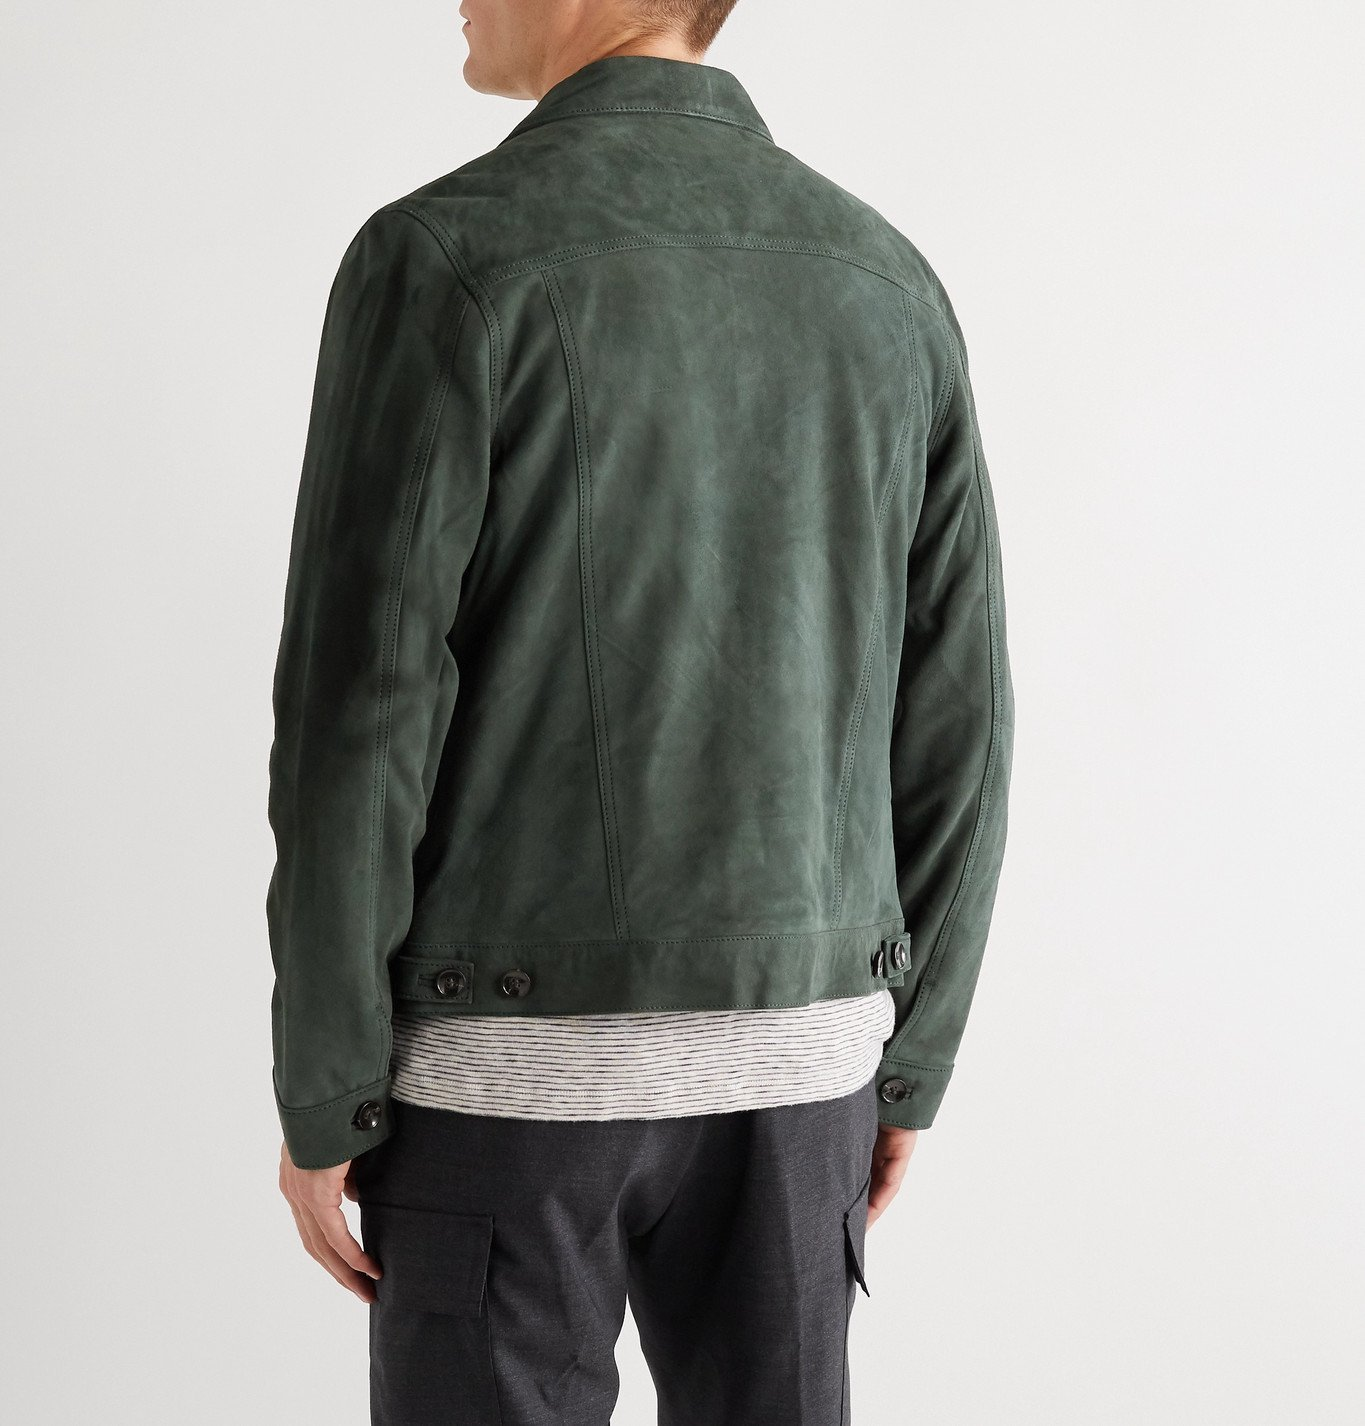 Officine Generale - Liam Suede Jacket - Green